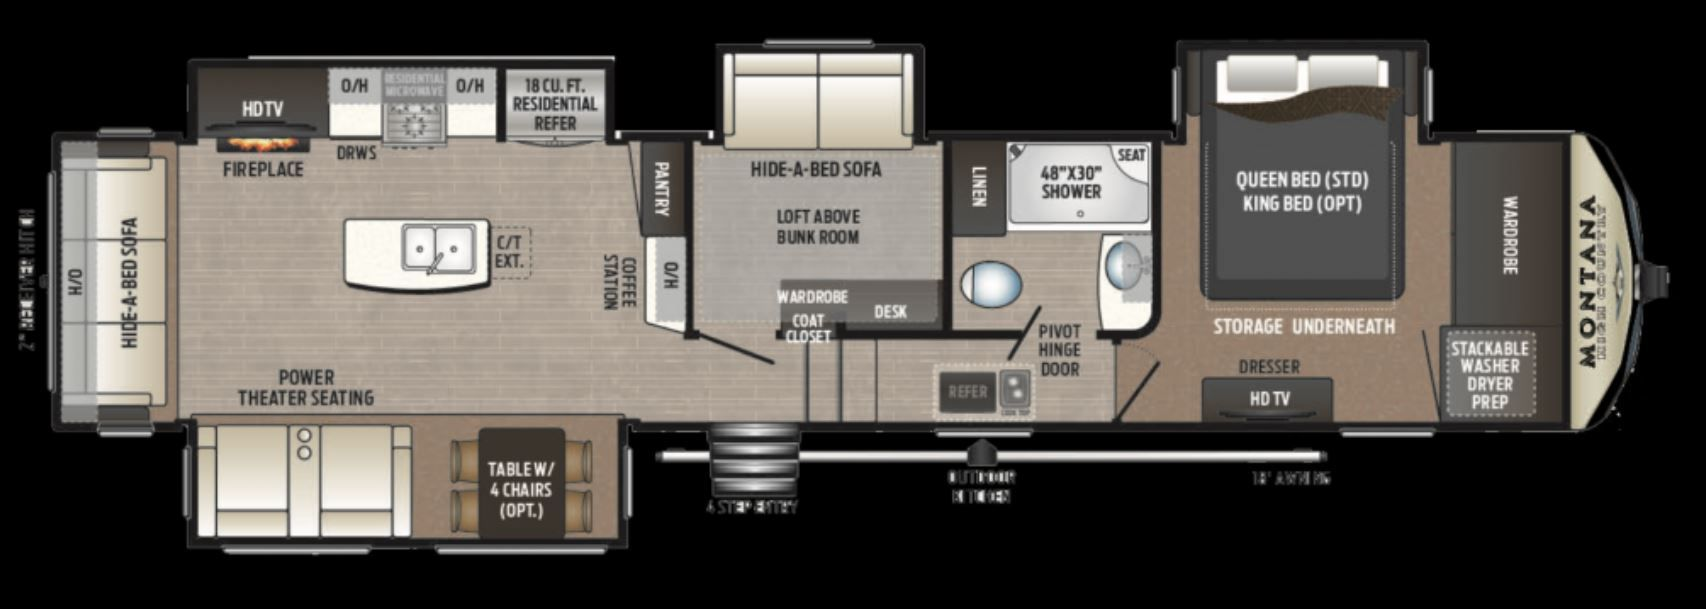 2018 Keystone Montana High Country 385br Campers For Sale Fifth